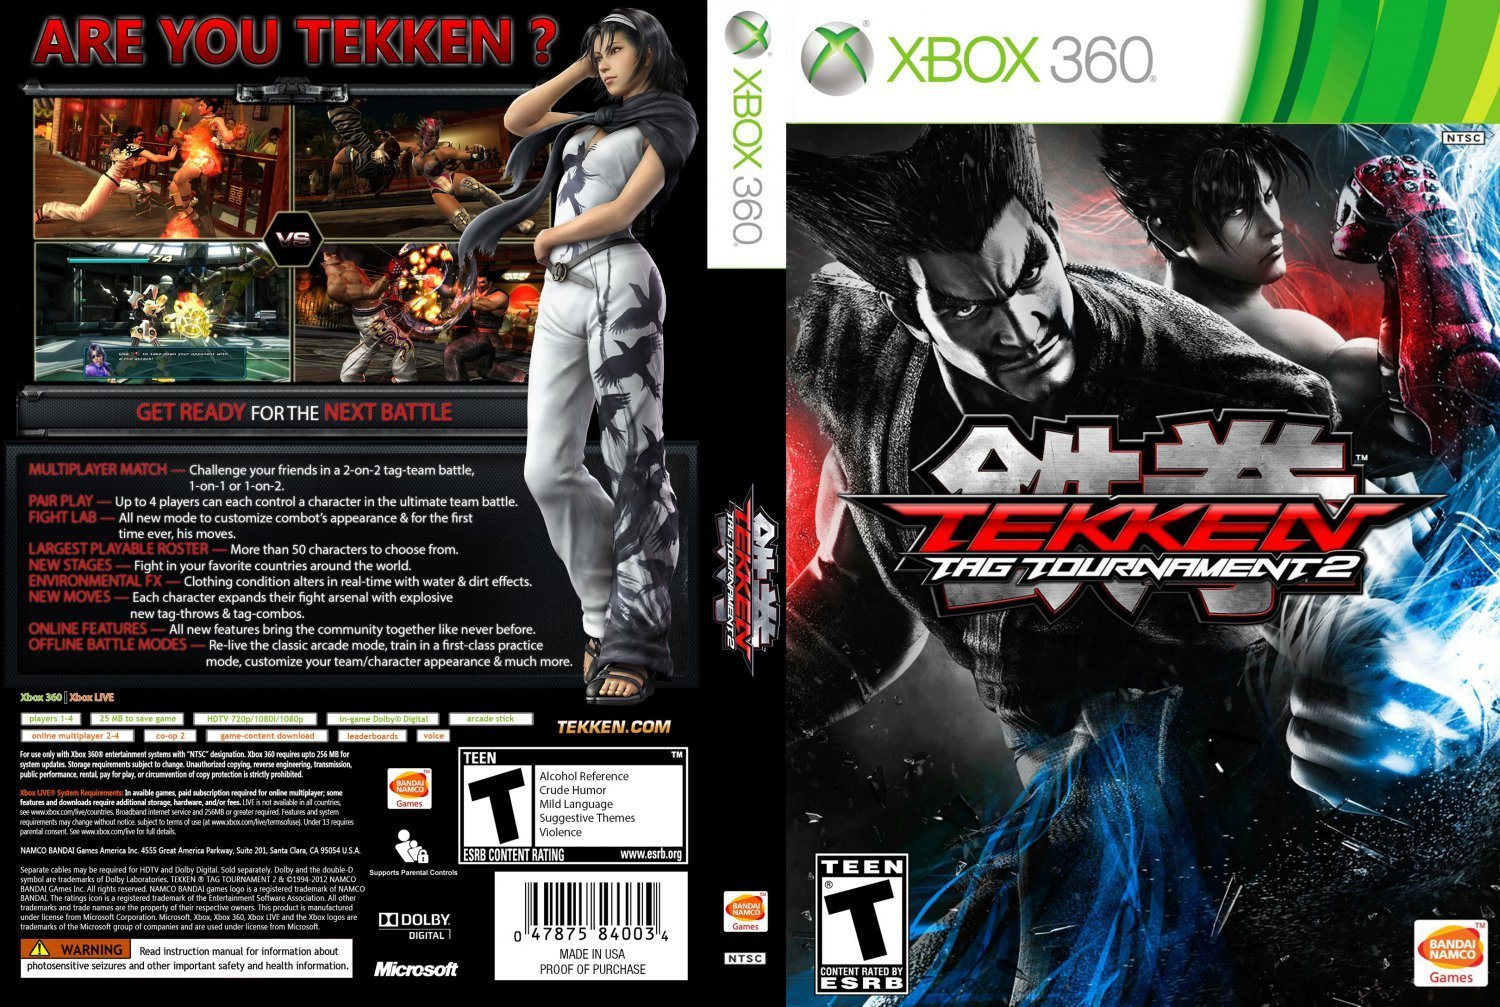 Tekken Tag Tournament 2 | Dvd Covers and Labels